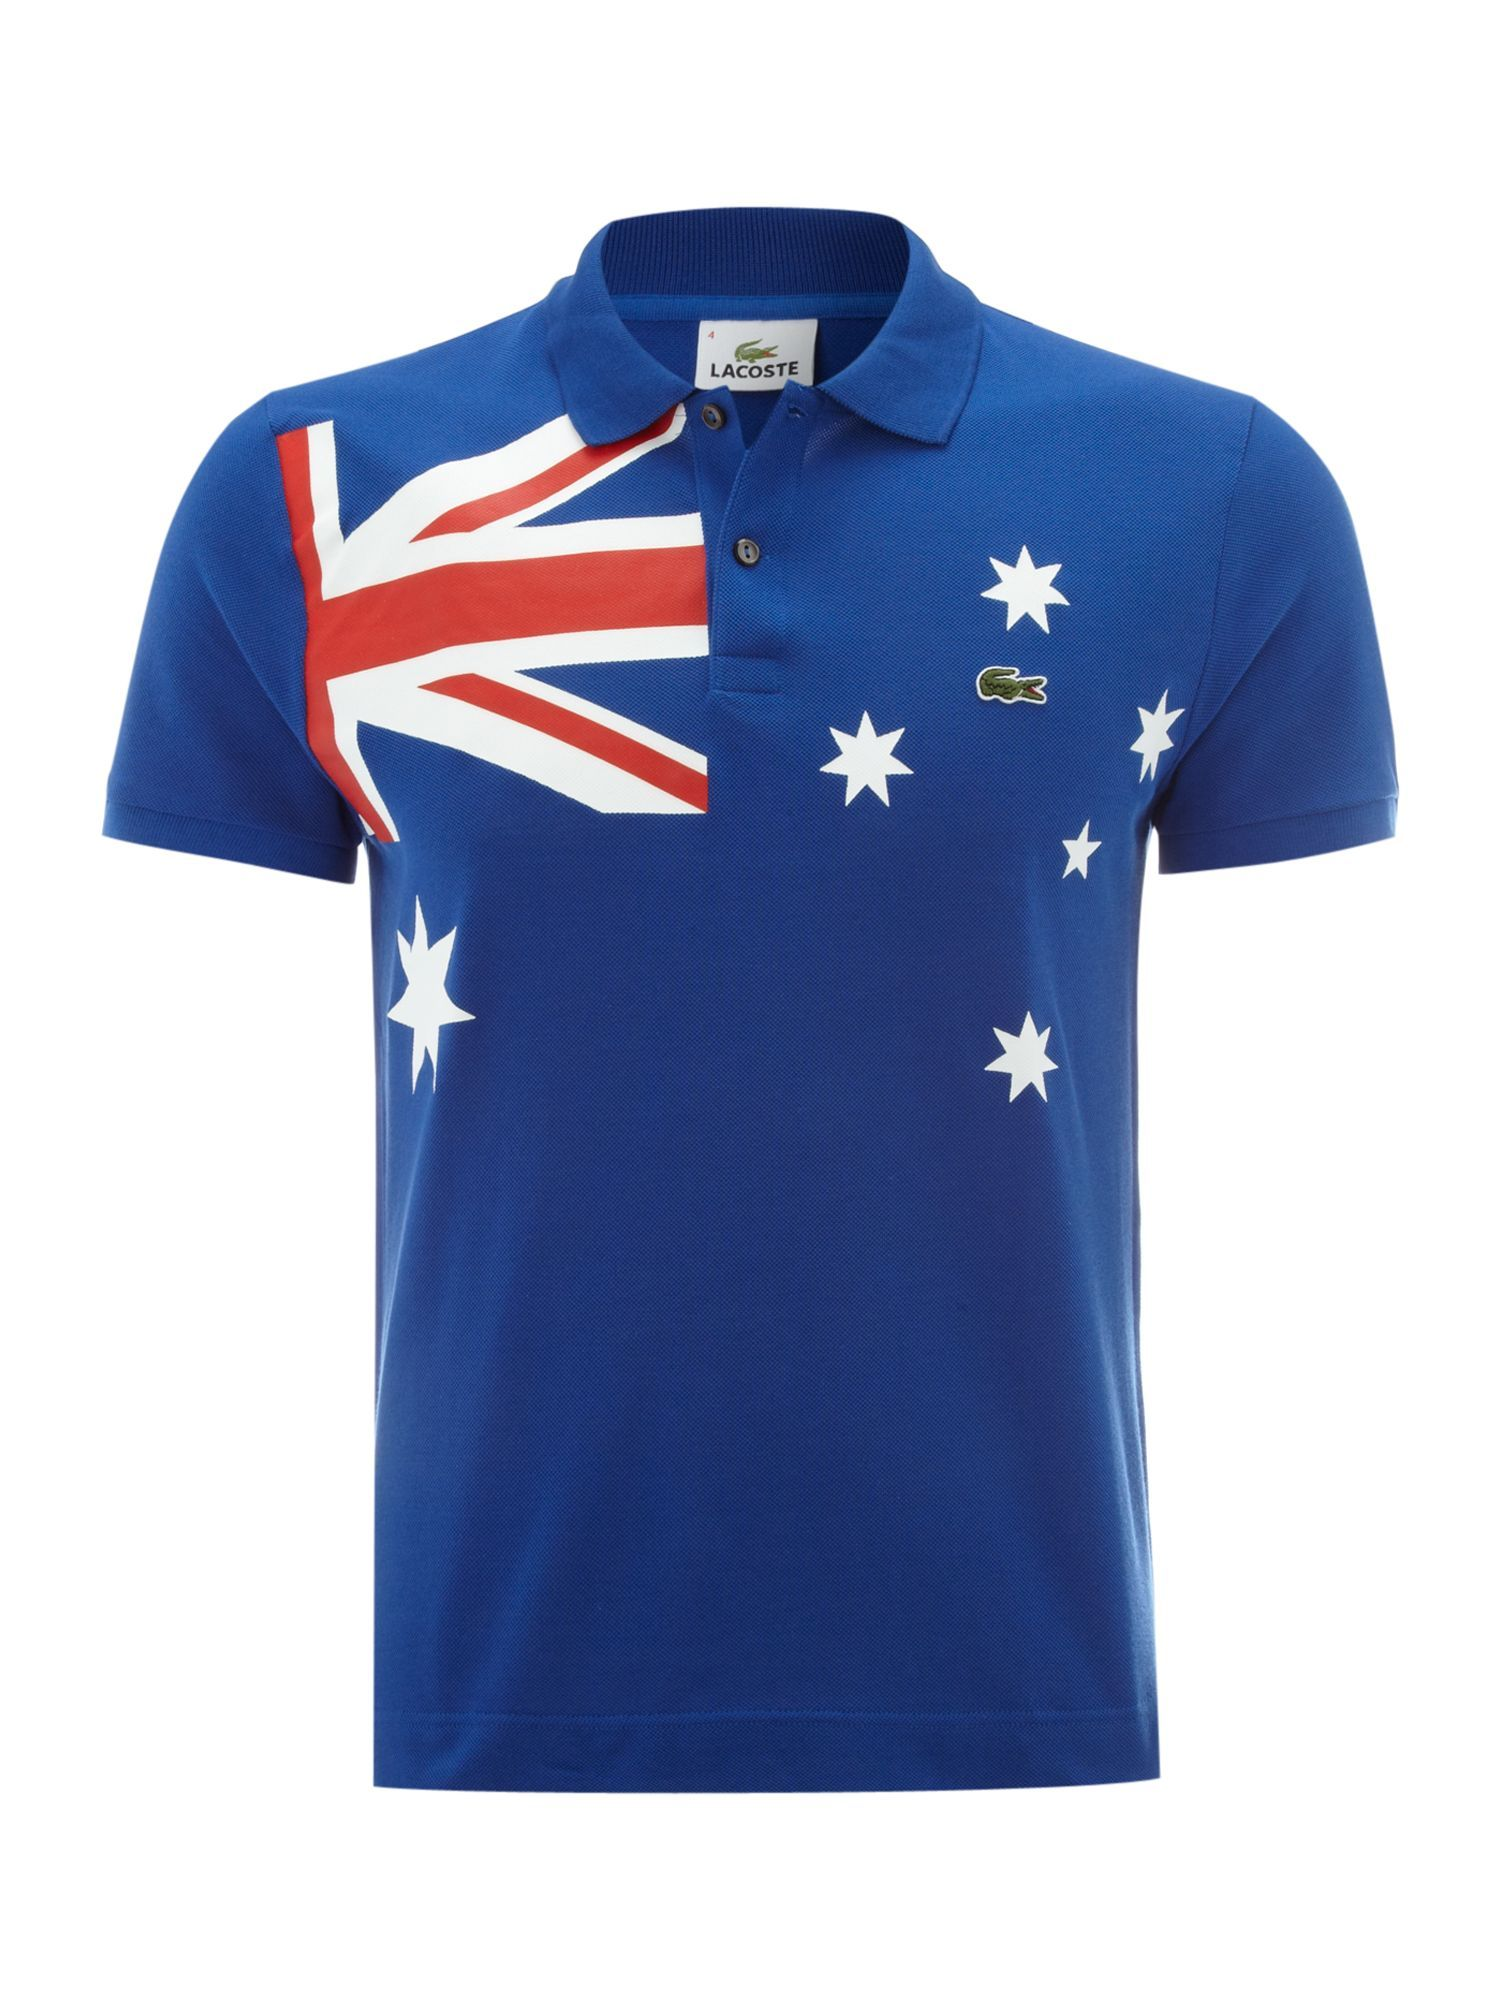 Lacoste slim fit australia flag polo shirt men classy for Discount lacoste mens polo shirts